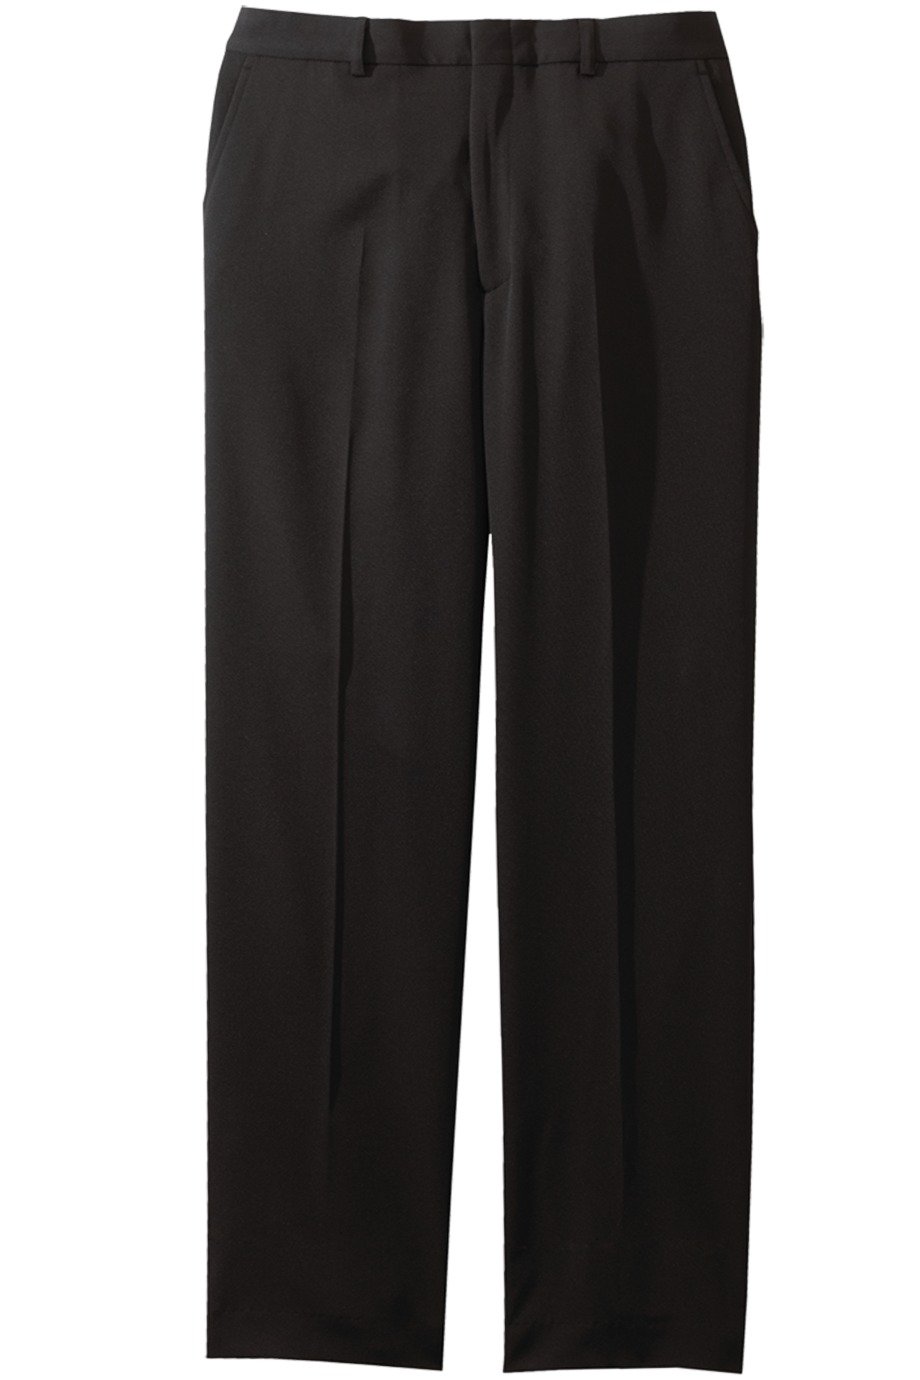 Edwards Garment 2550 - Men's Classic Fit Trouser Pant